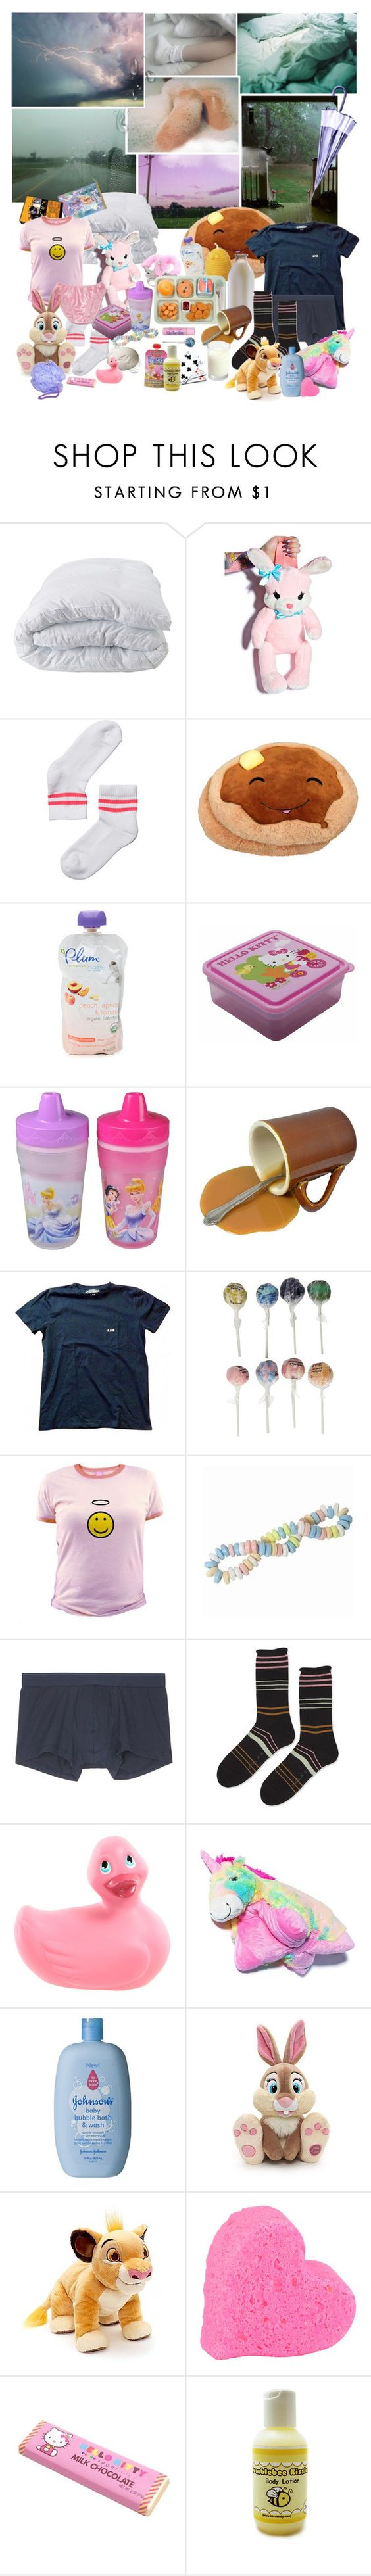 """Spring: Rainy cuddle day :]"" by sallimander ❤ liked on Polyvore featuring Soft-Tex, Monki, Hai, INDIE HAIR, Hello Kitty, The First Years, A.P.C., Lake, Cotton Candy and Sunspel"